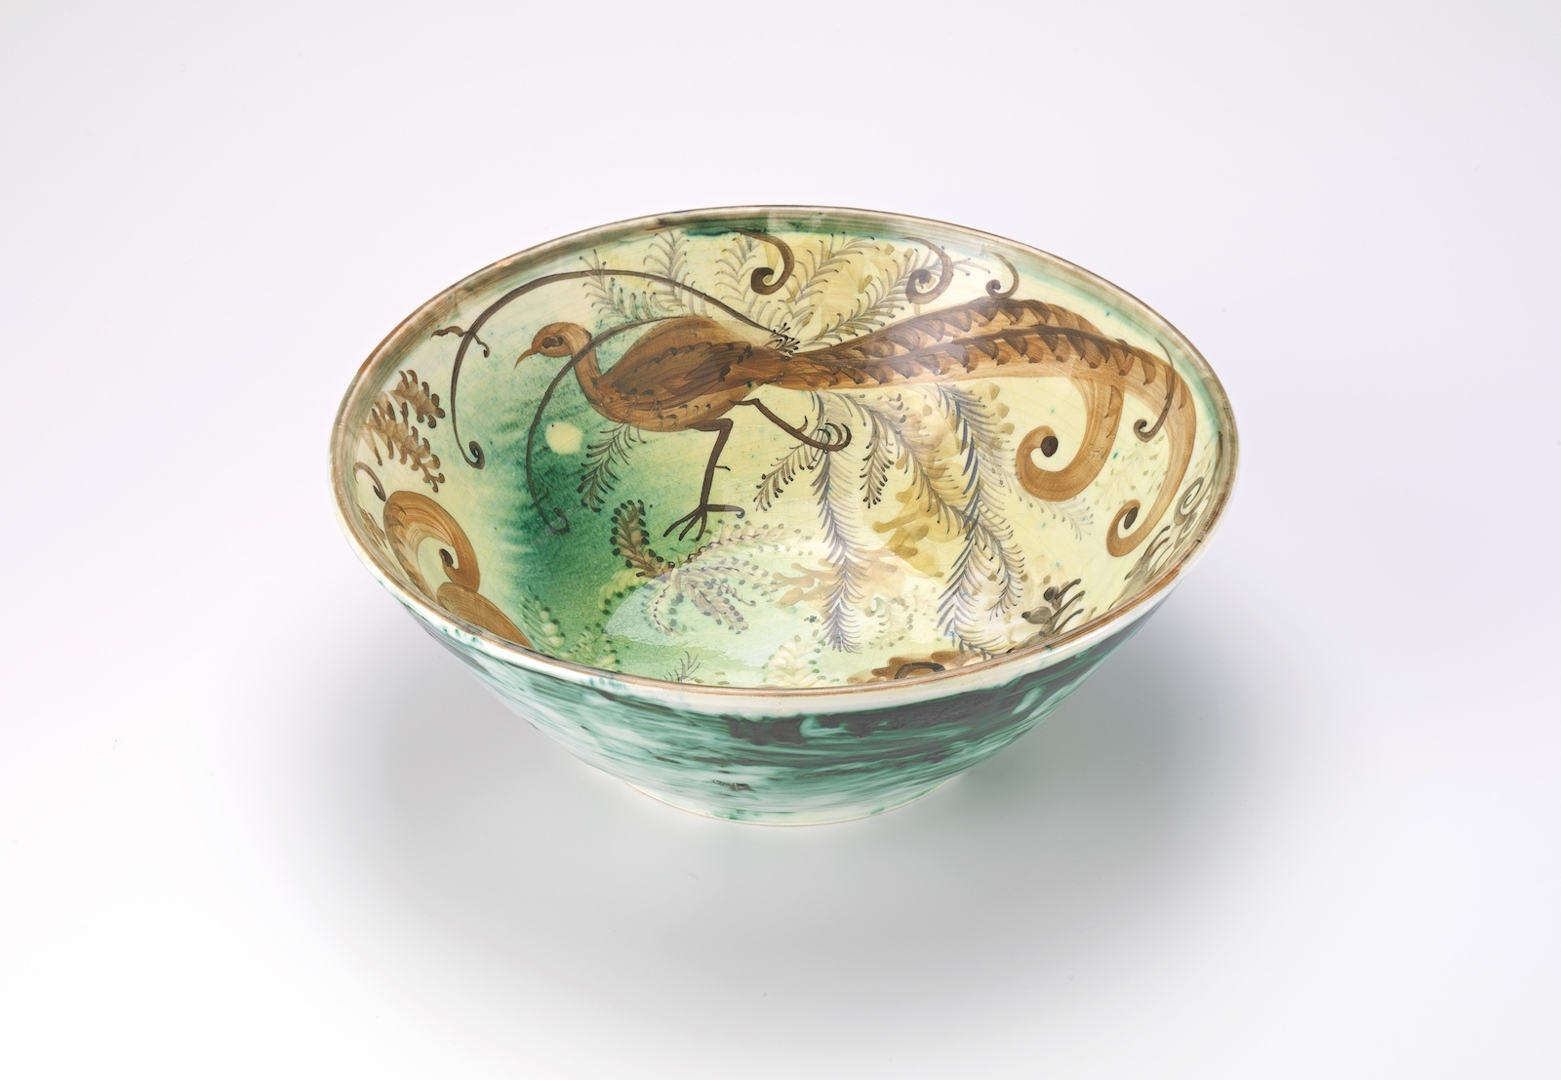 Glen Eira City Council presents Stories in clay: Arthur Merric Boyd Pottery image